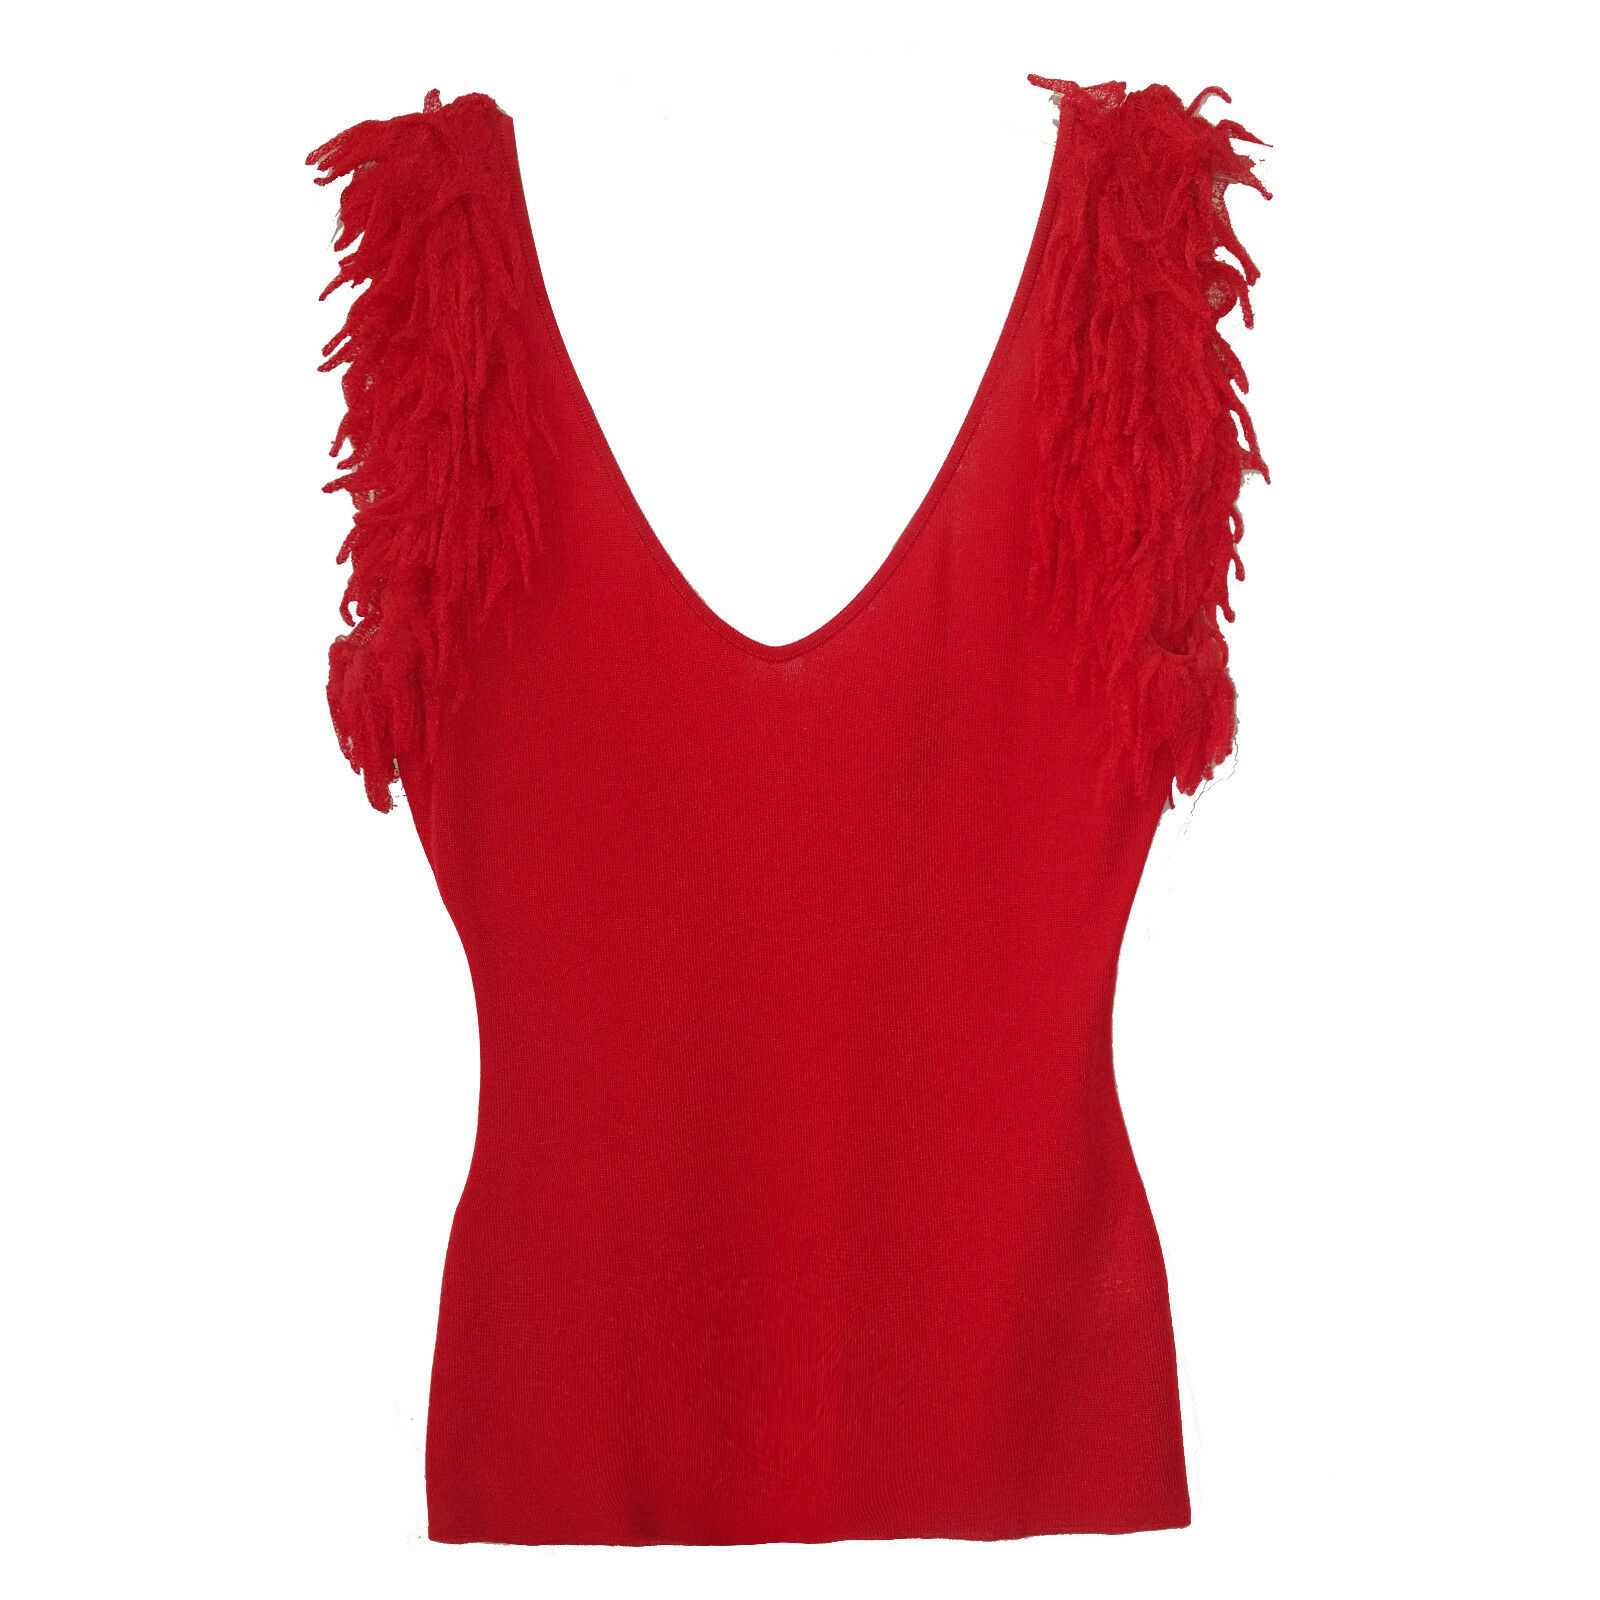 ROBERTO CAVALLI CORAL KNIT TOP WITH FRINGED DETAIL SZ L